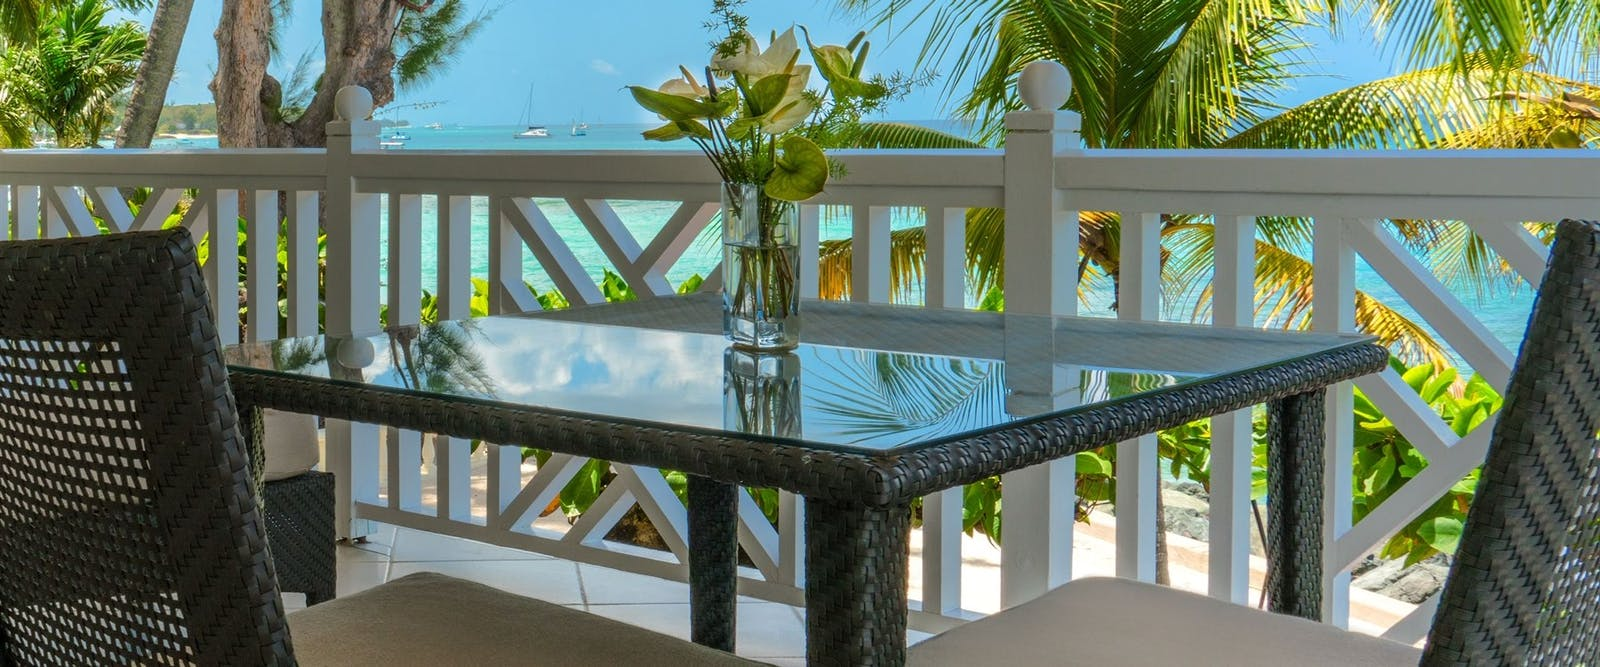 Luxury Junior Suite Balcony at Coral Reef Club, Barbados